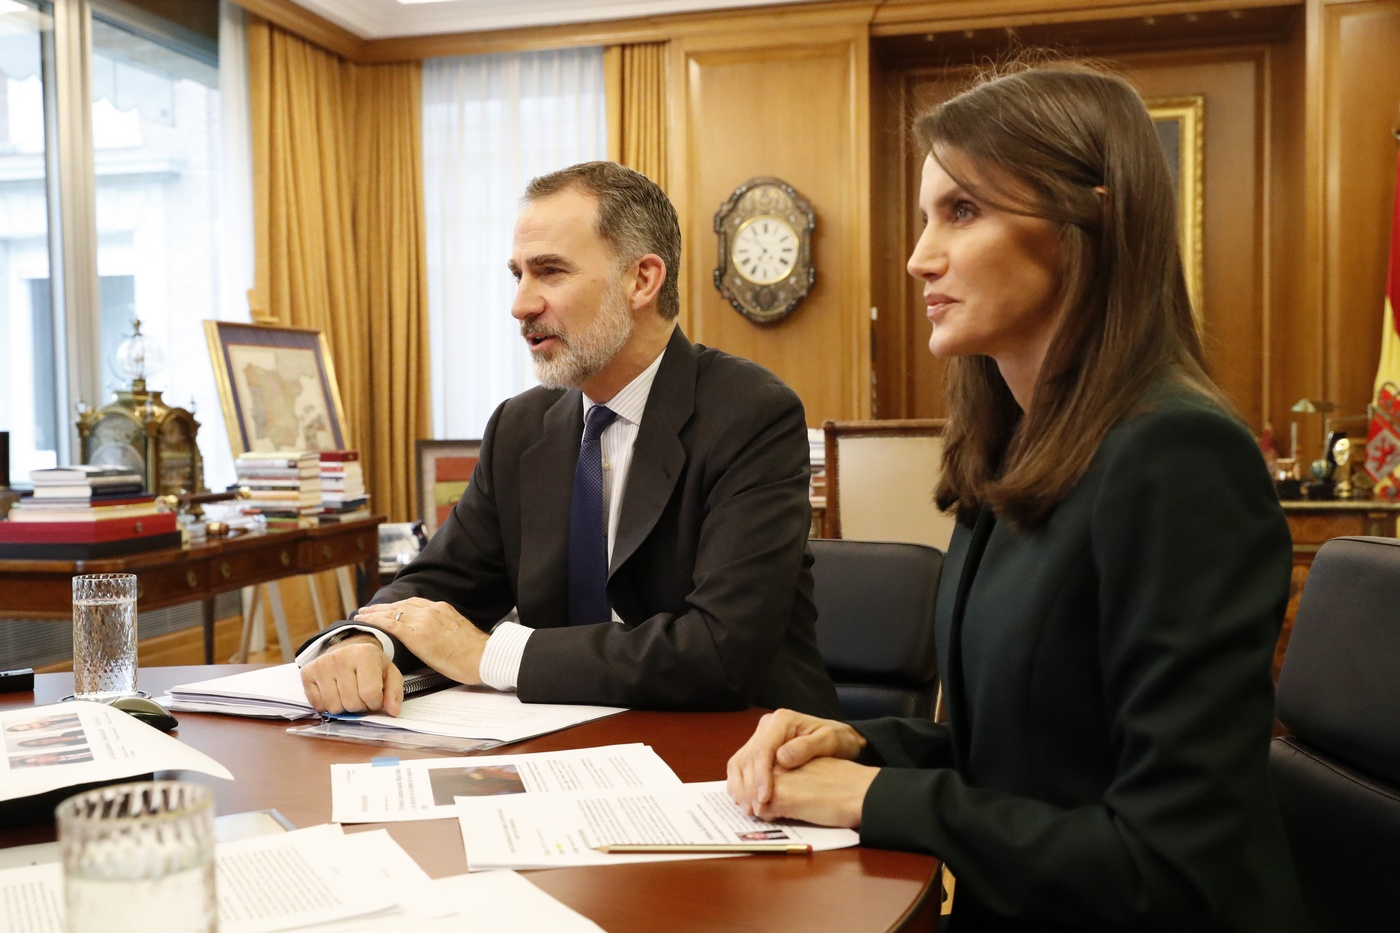 King Felipe and Queen Letizia held a video conference withInstituto Cervantes